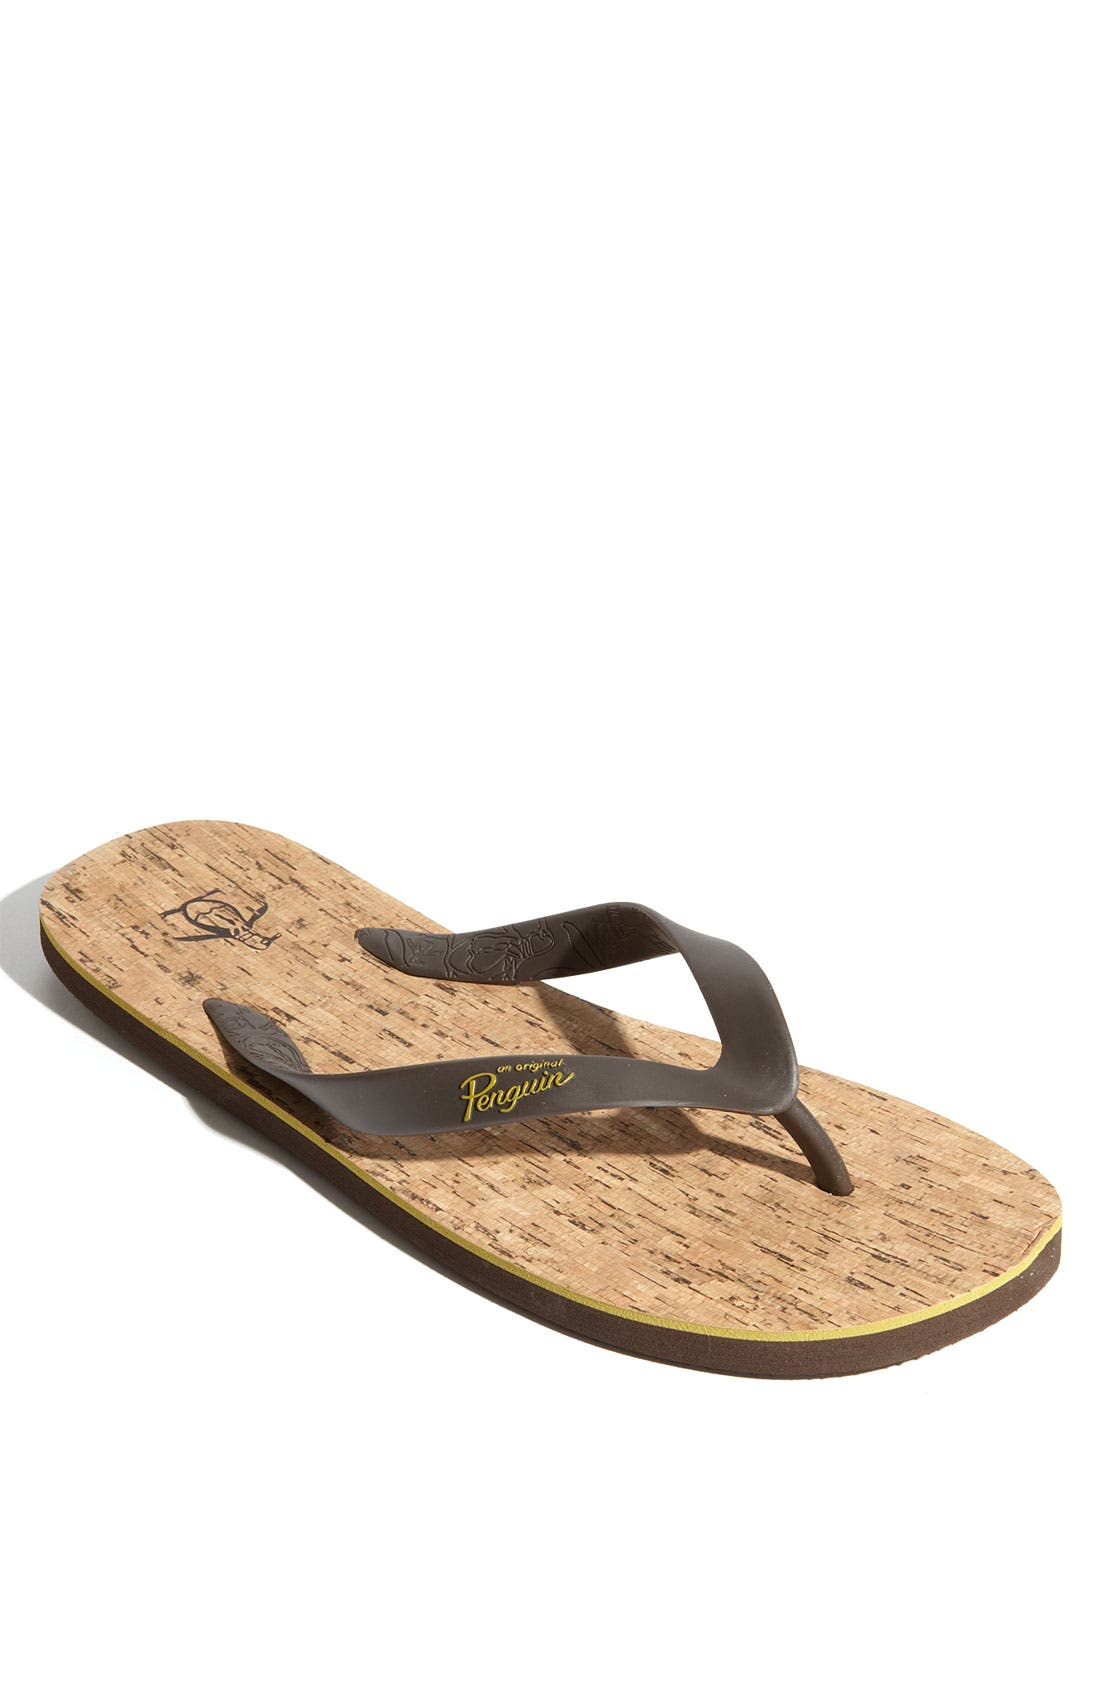 Main Image - Original Penguin 'Cork' Flip Flop